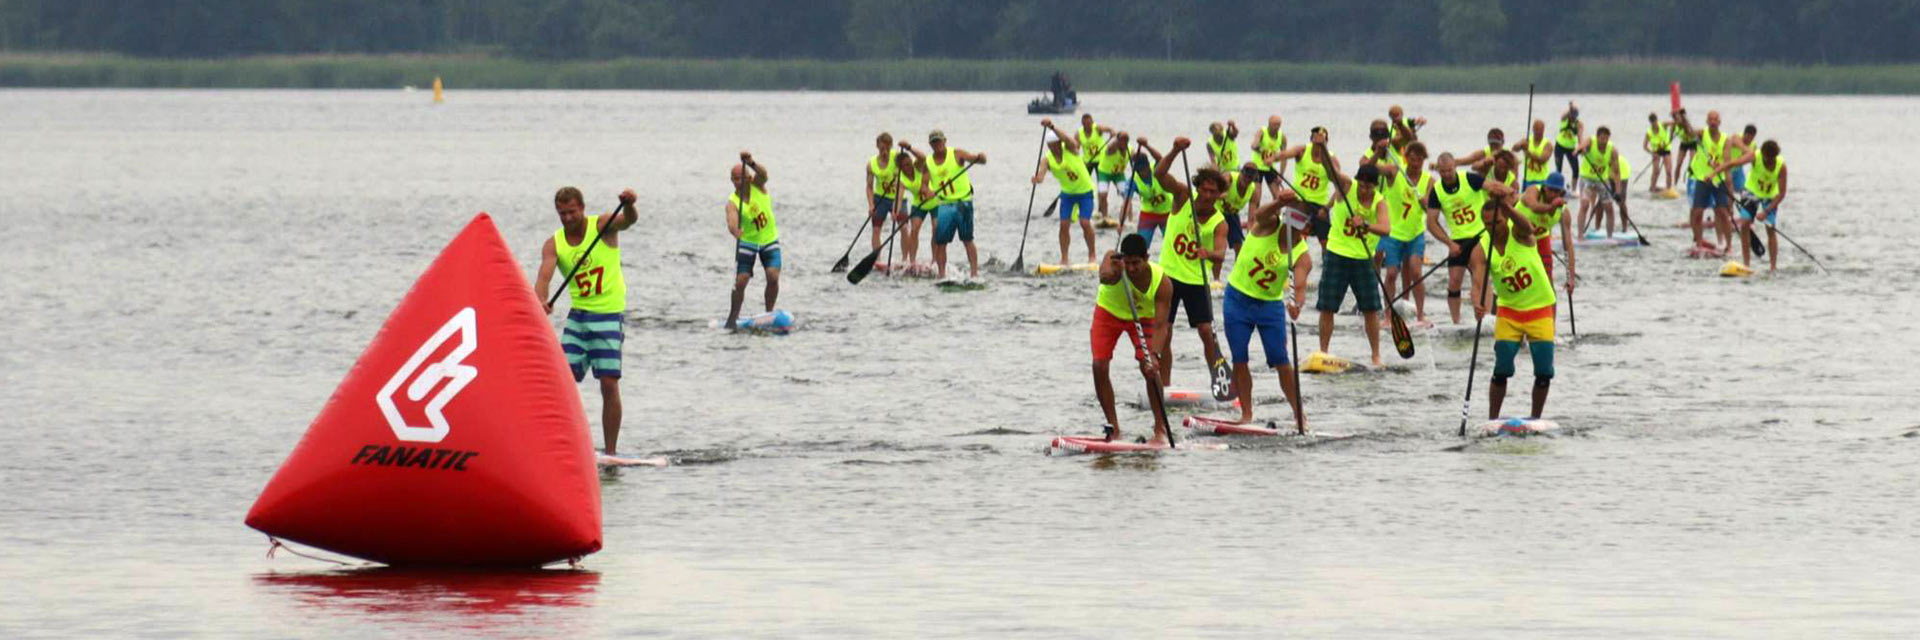 Stand-up-Paddle-wedstrijd